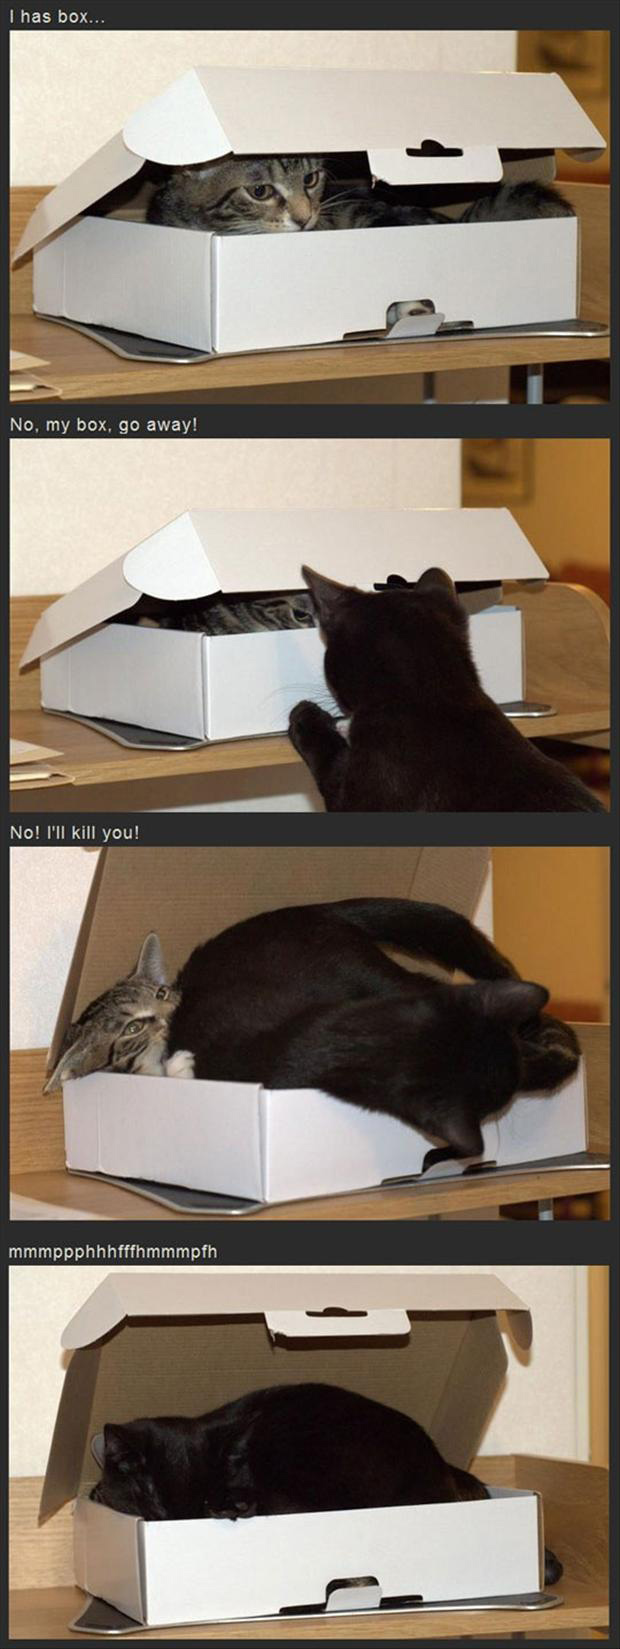 funny pictures of two cats in one box